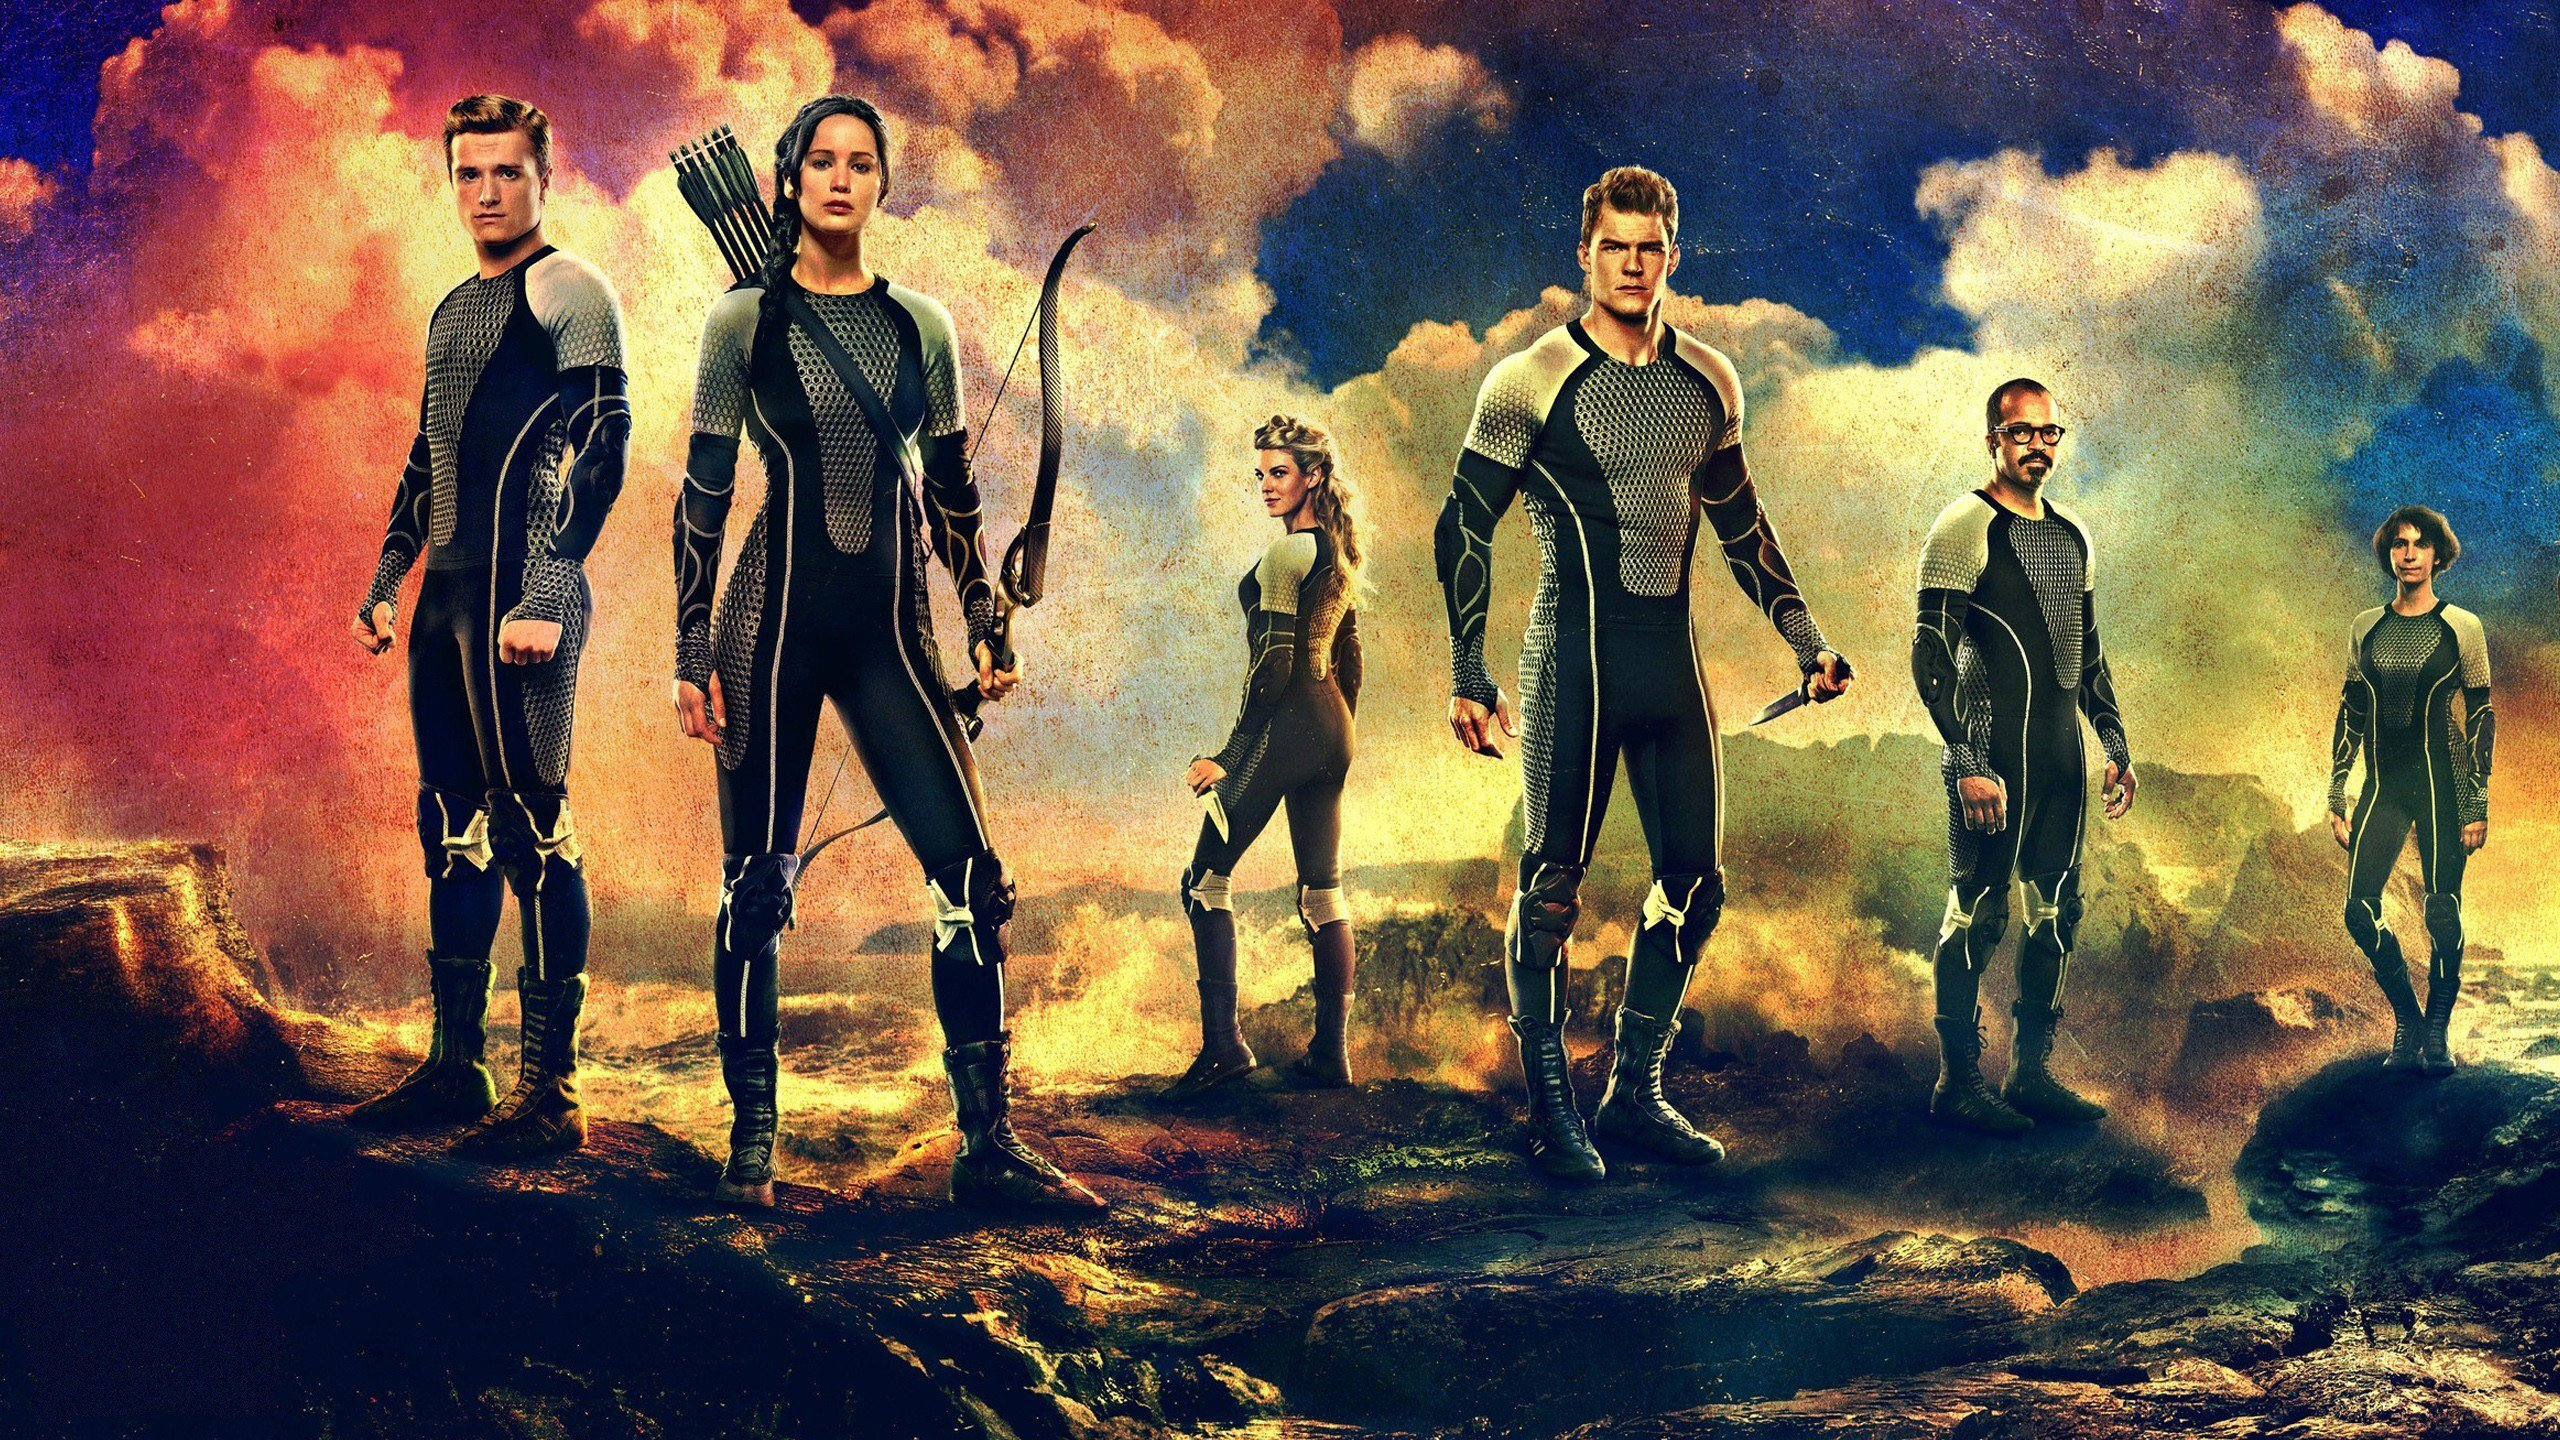 2560x1440 the hunger games catching fire 1440p resolution hd 4k